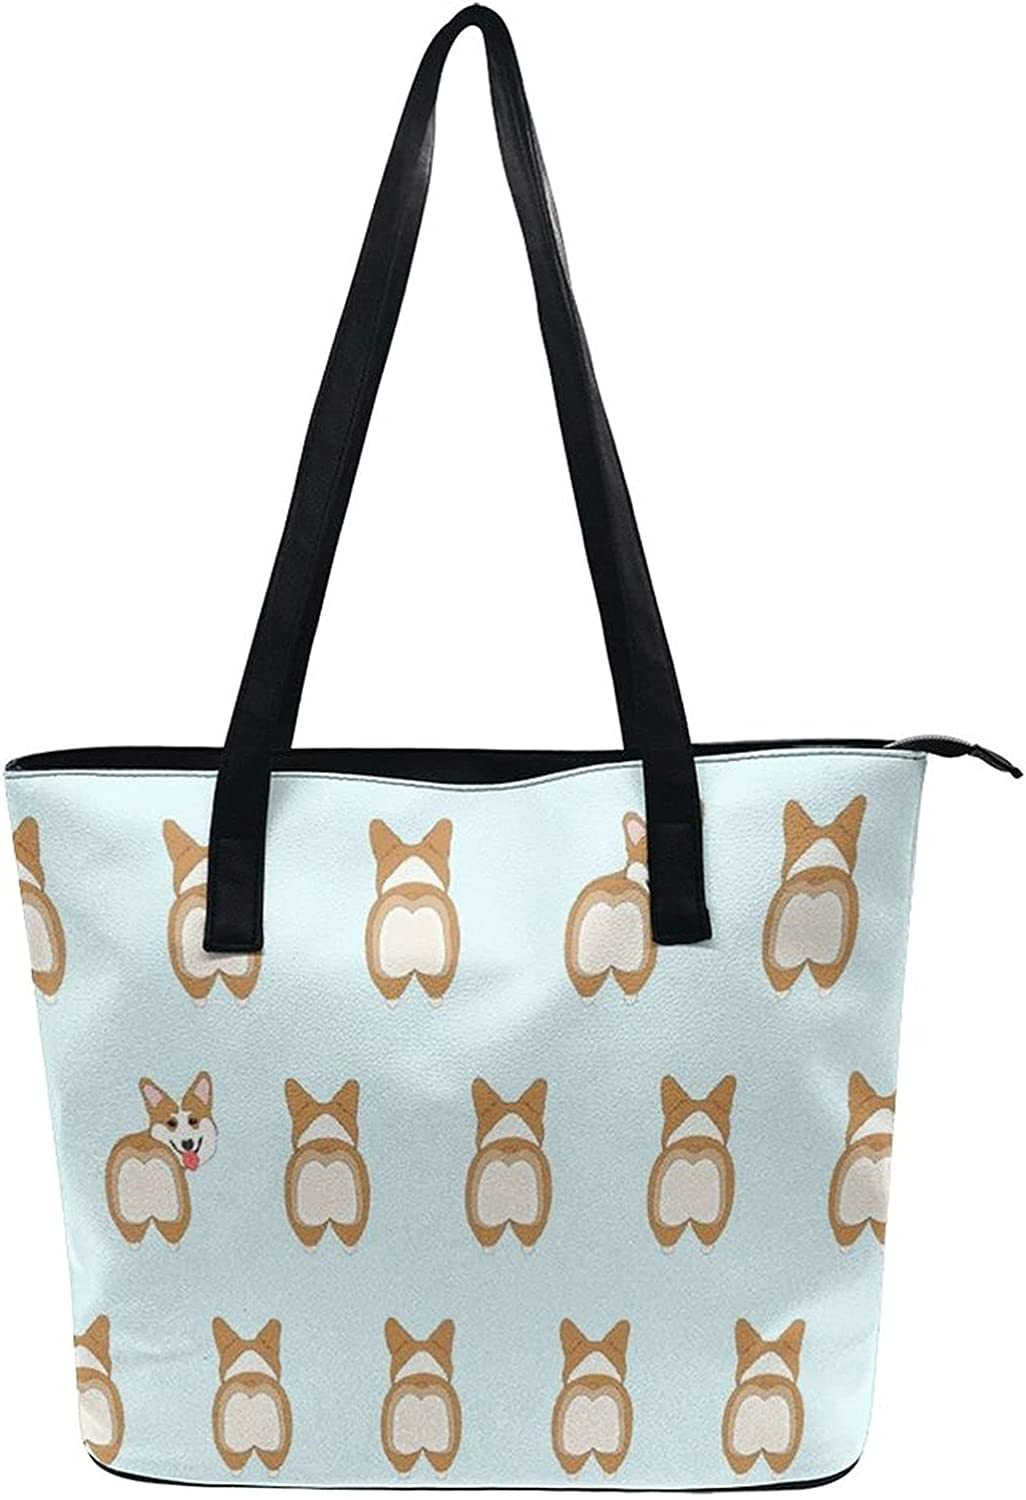 Women's Stylish Waterproof Tote Bag Beach Casual It is very popular Shoulder Travel Max 80% OFF